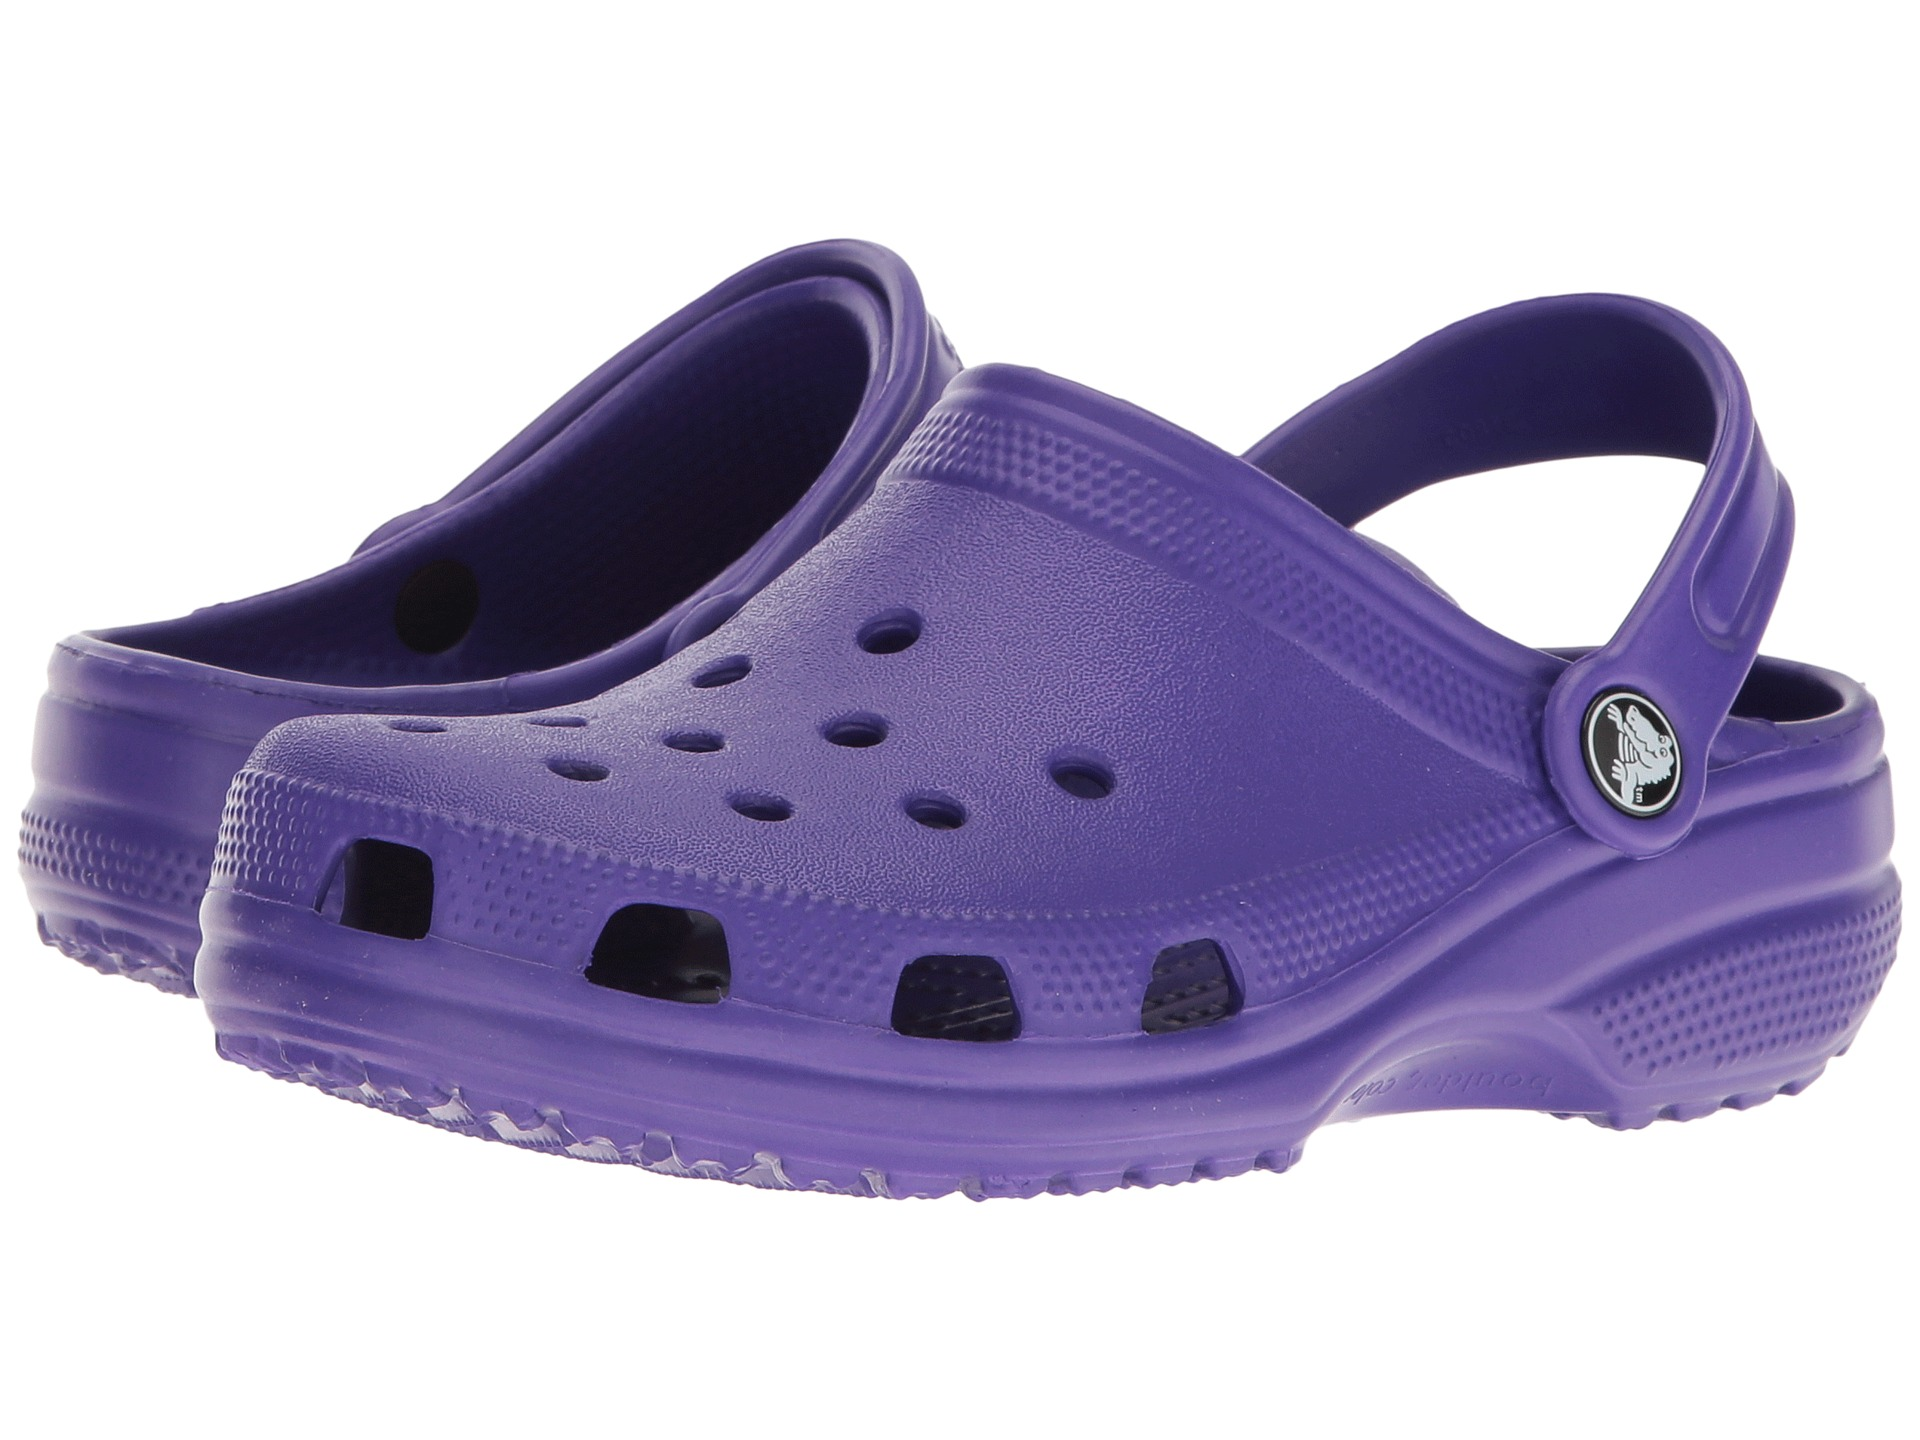 Kids can't wait to wiggle their toes inside the fuzzy, cushioned coziness of the Crocs Kids Classic Lined Graphic Clogs. Ultralight, durable Croslite™ foam construction gives them a light-as-air feel.